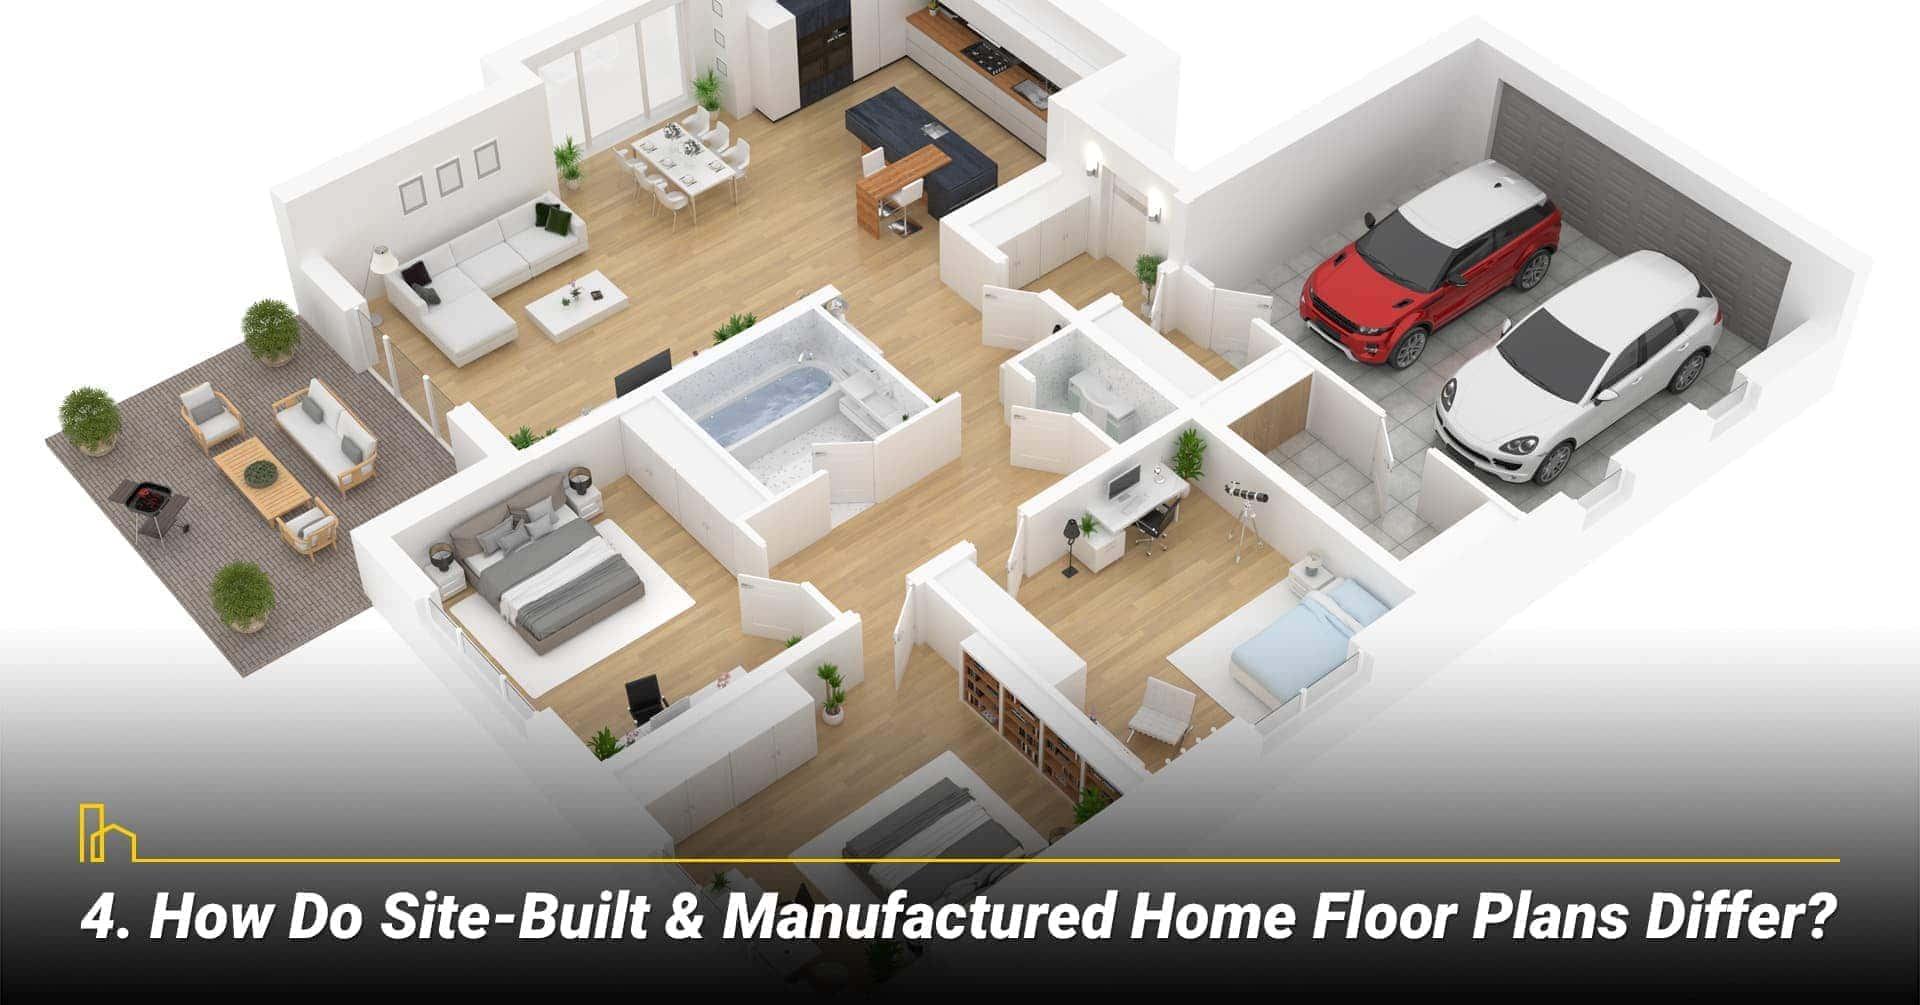 How Do Site-Built & Manufactured Home Floor Plans Differ? floor plans for site-built and manufactured homes